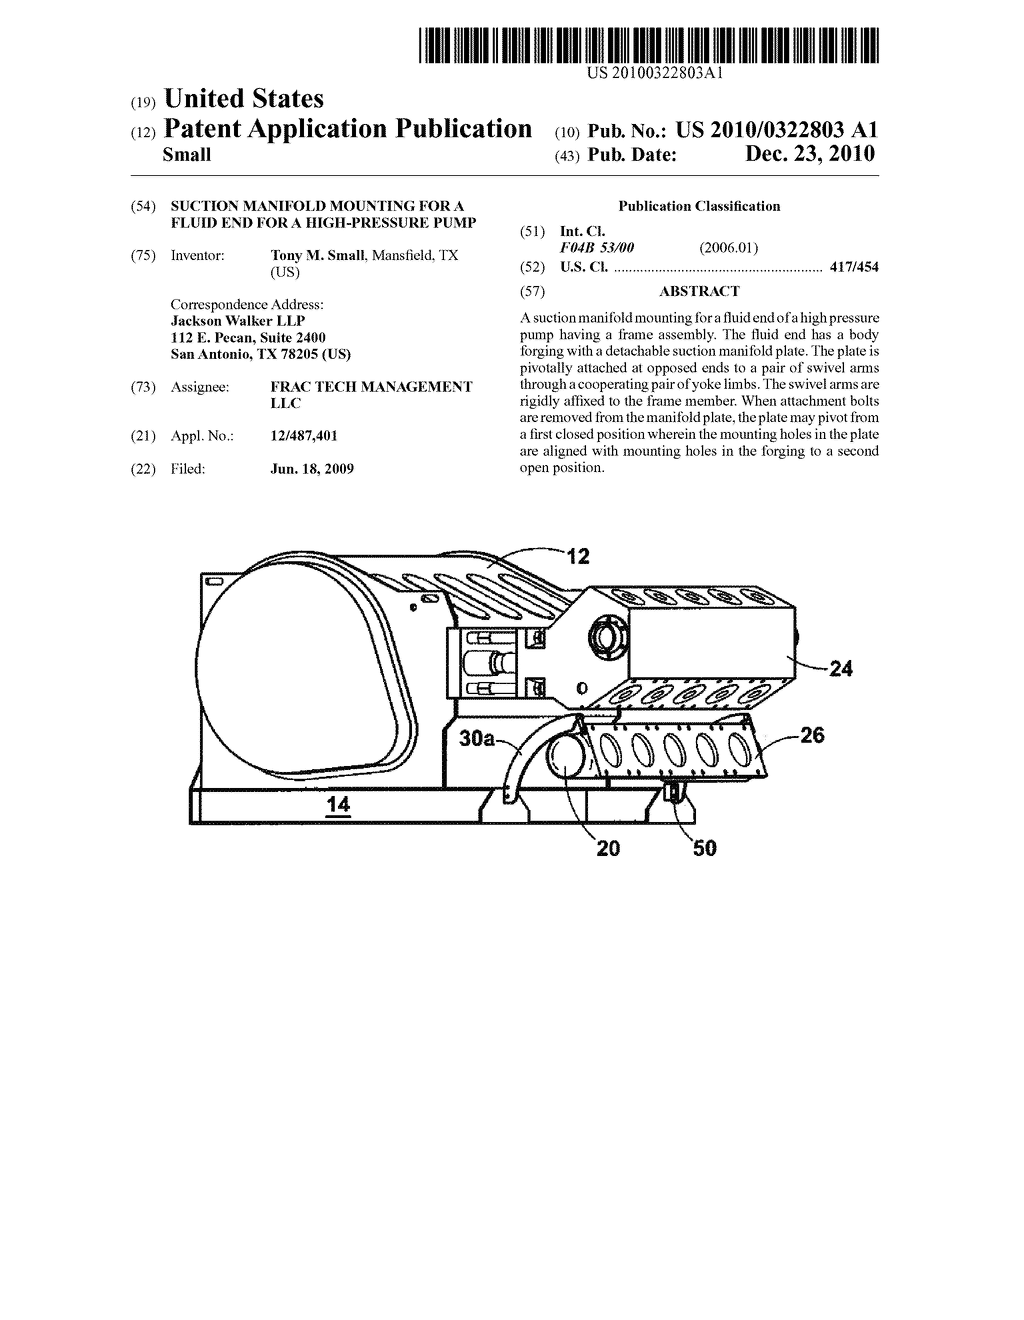 SUCTION MANIFOLD MOUNTING FOR A FLUID END FOR A HIGH